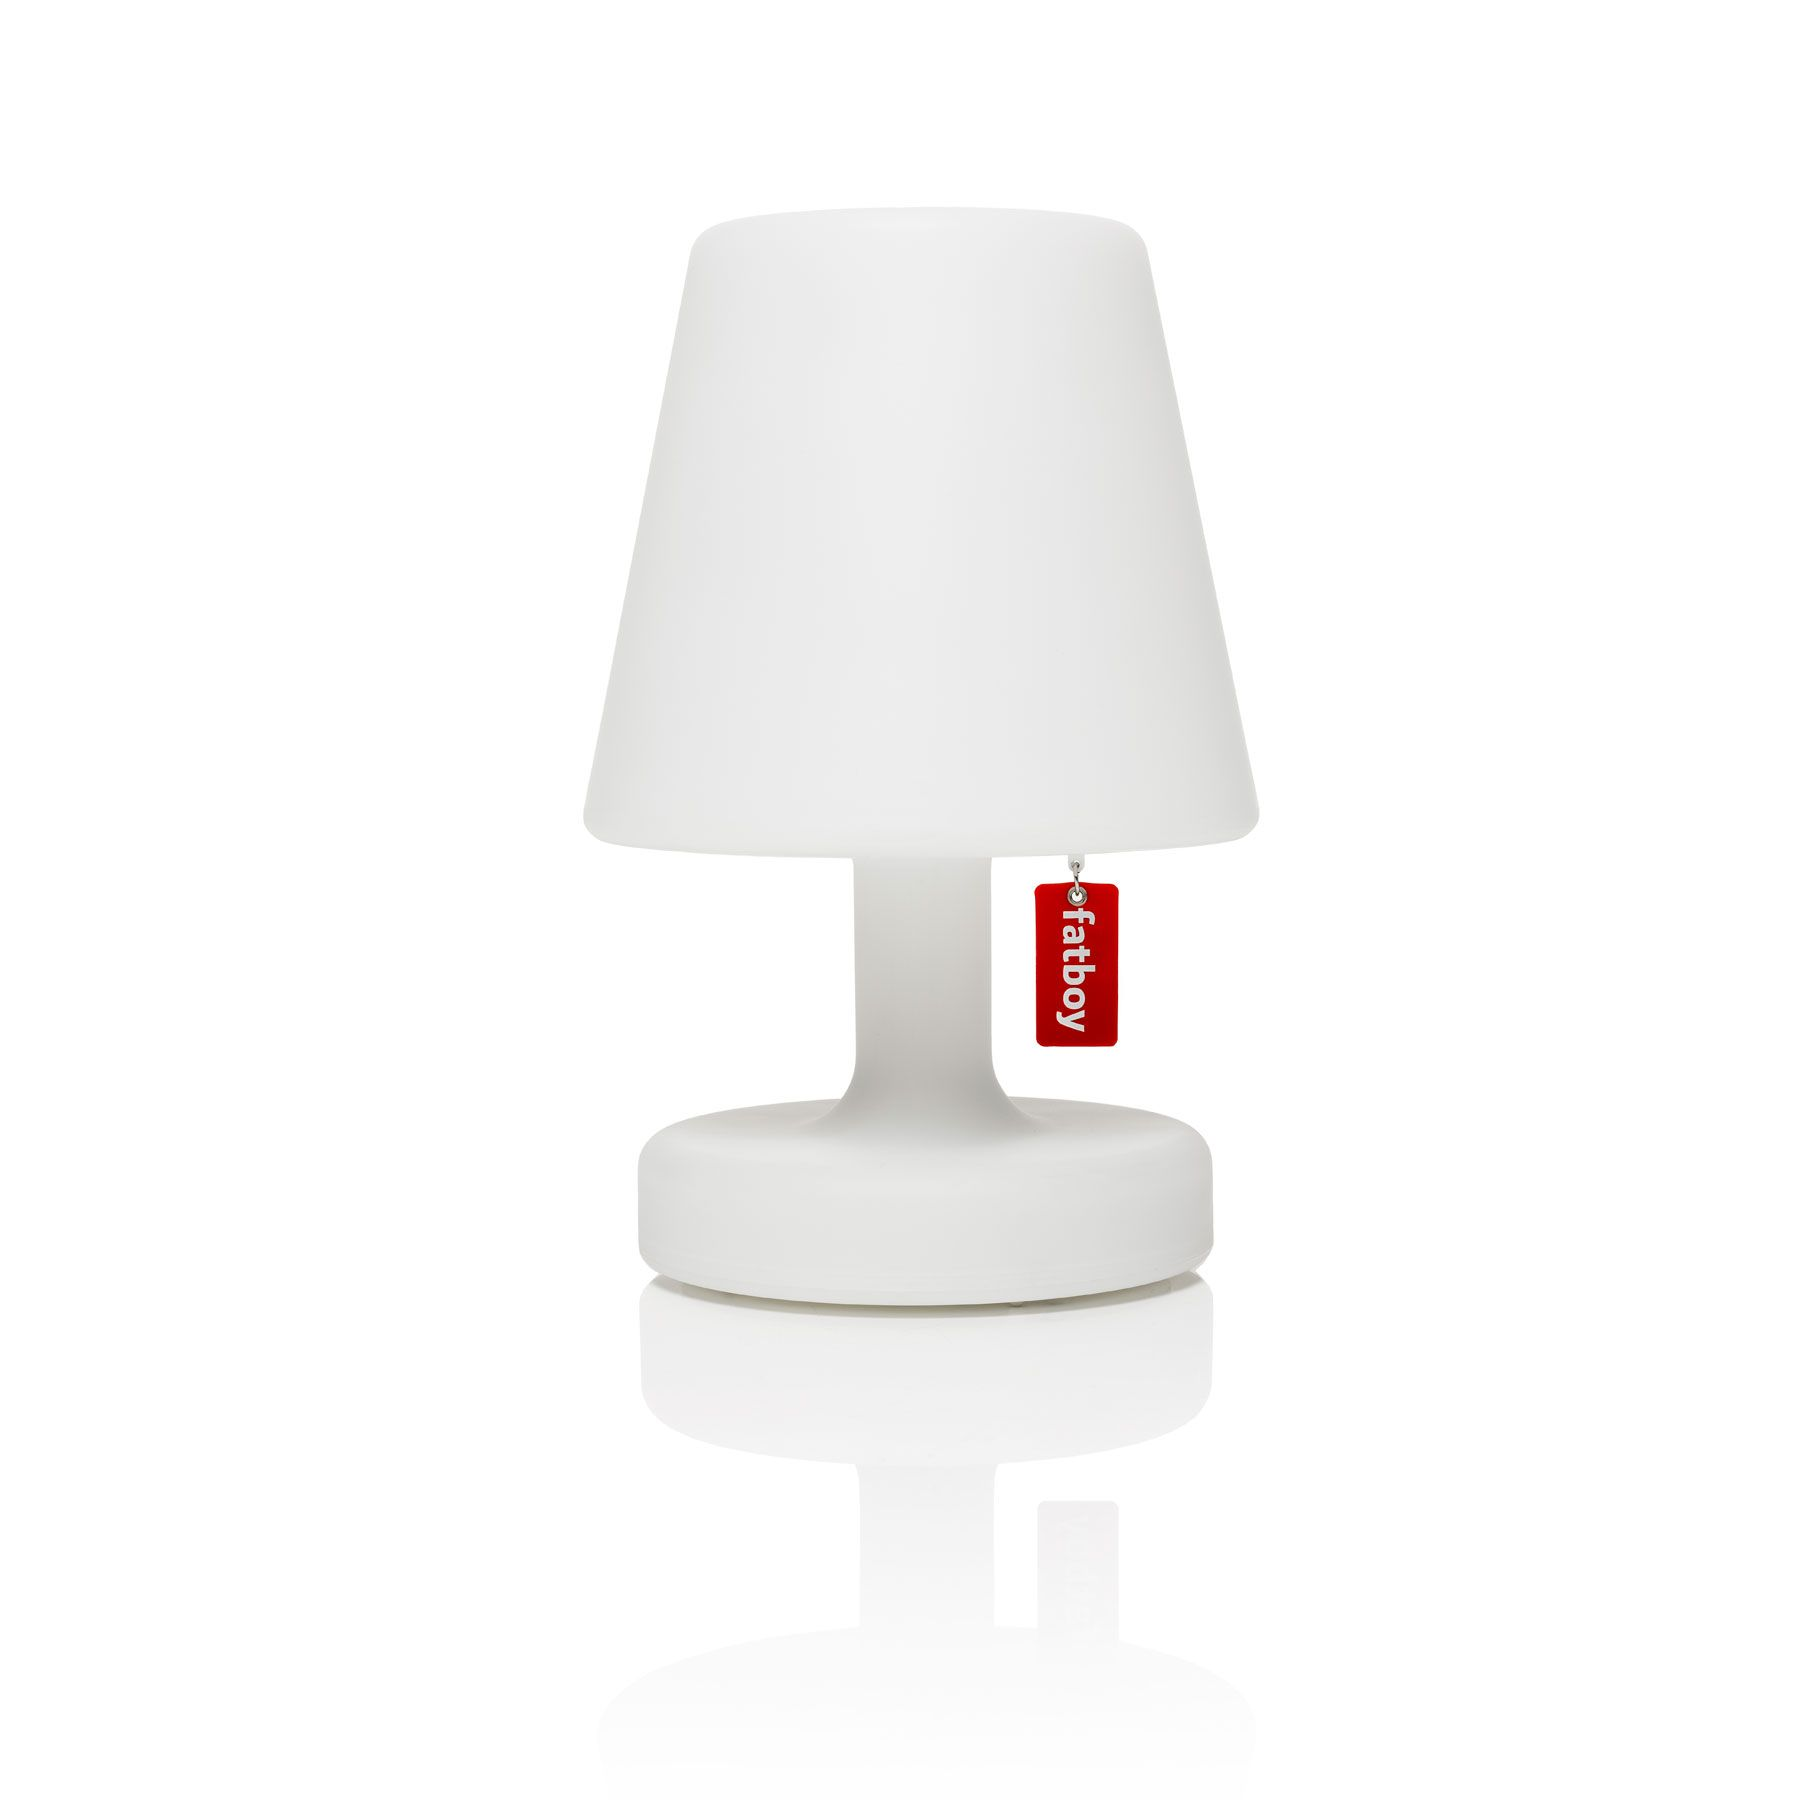 Edison The Petit Cordless Led Table Lamp By Fatboy Usa Etpsng Wht Ul In 2020 Led Table Lamp Lamp Table Lamp